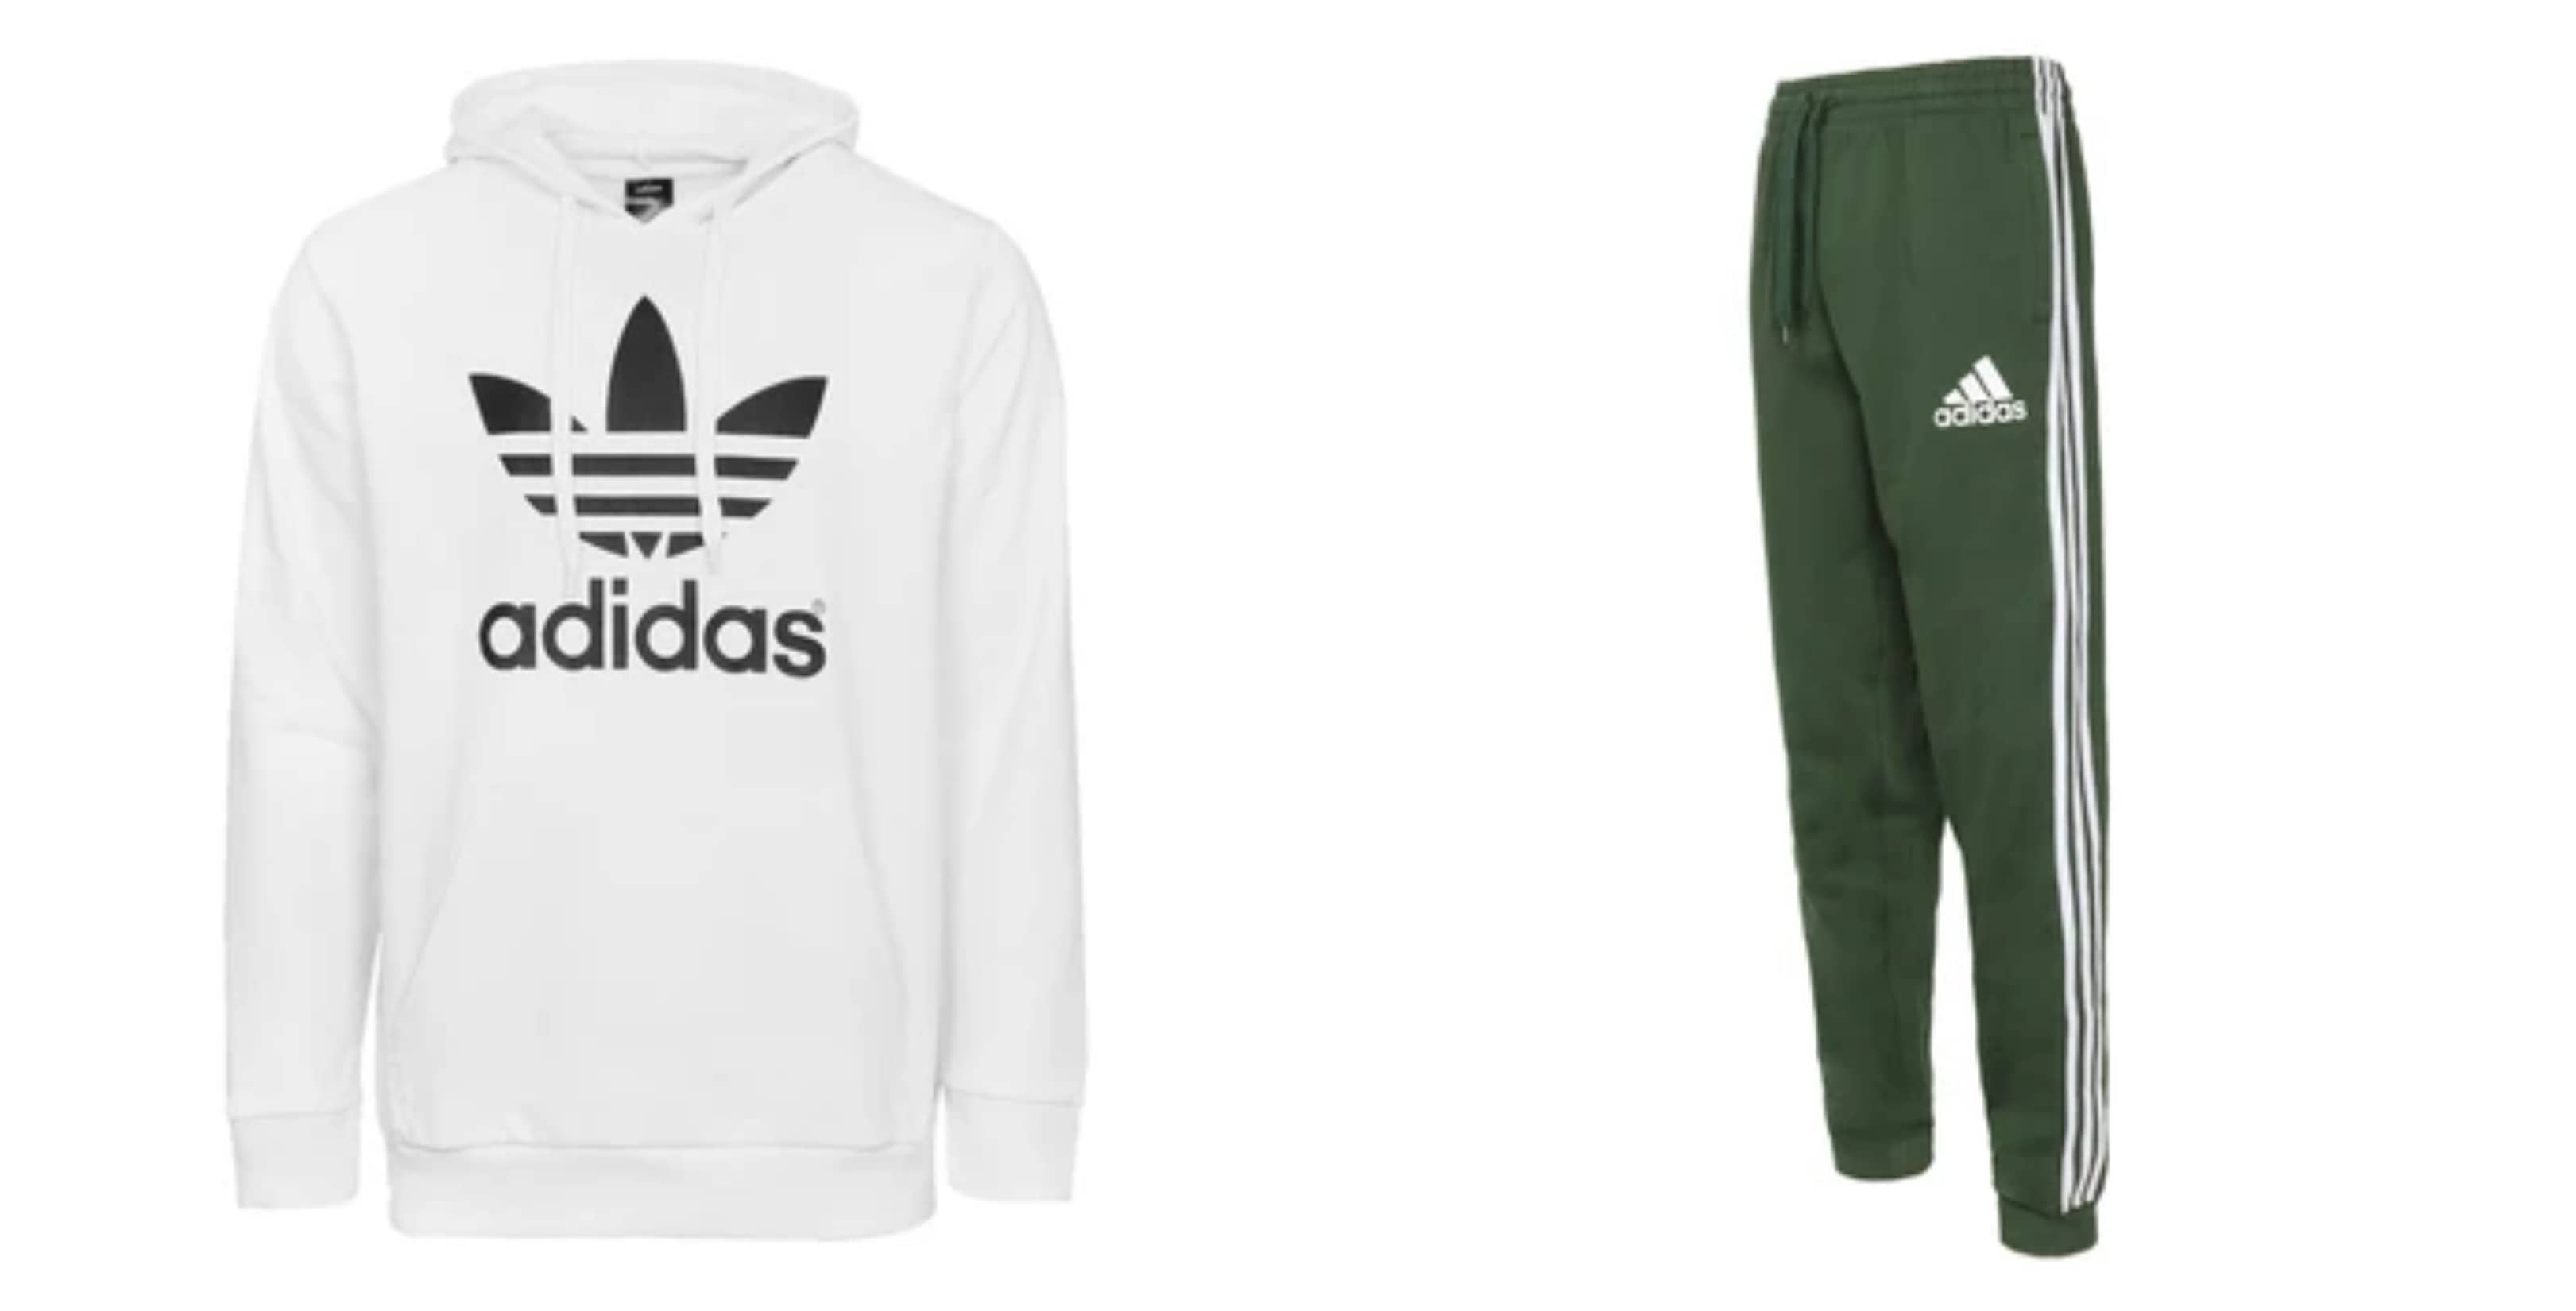 adidas Men's Trefoil Fleece Hoodie + Trefoil Fleece Joggers Set